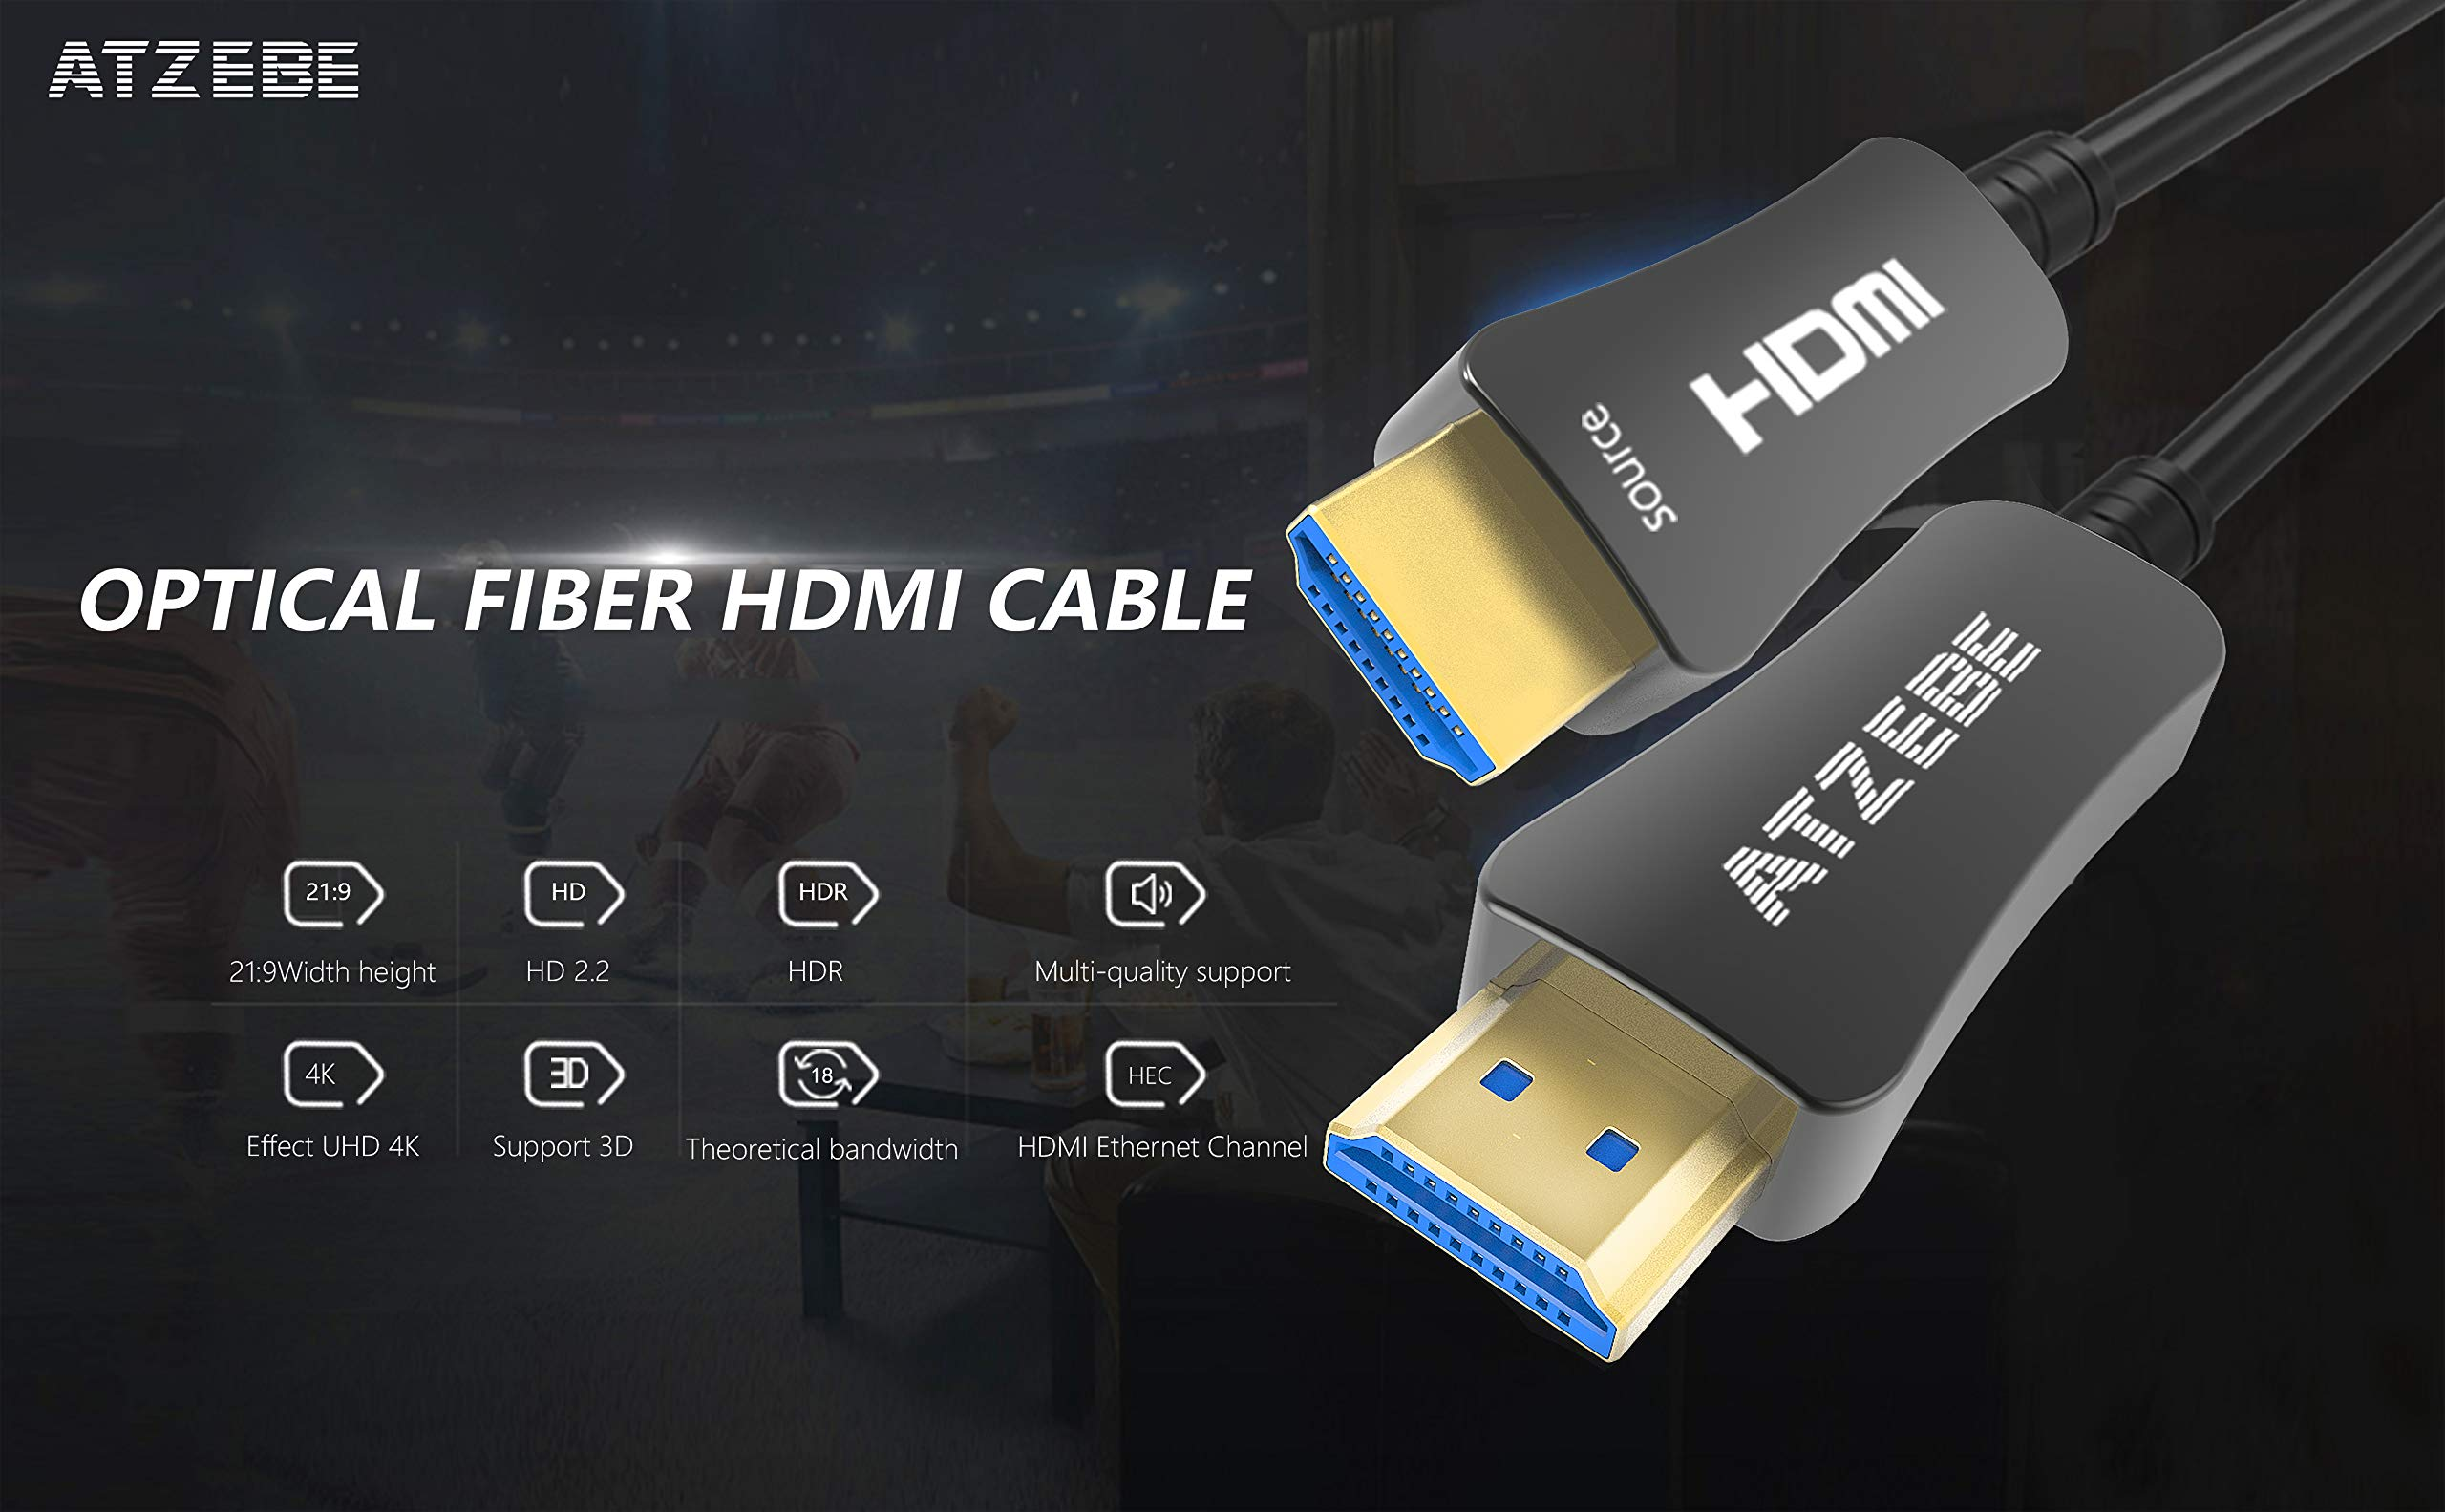 ATZEBE Fiber Optic HDMI Cable 60ft, 4K Optical HDMI Cable Supports 4K@60Hz, 4:4:4/4:2:2/4:2:0, HDR, Dolby Vision, HDCP2.2, ARC, 3D, High Speed 18Gbps, Slim and Flexible Active HDMI Cable